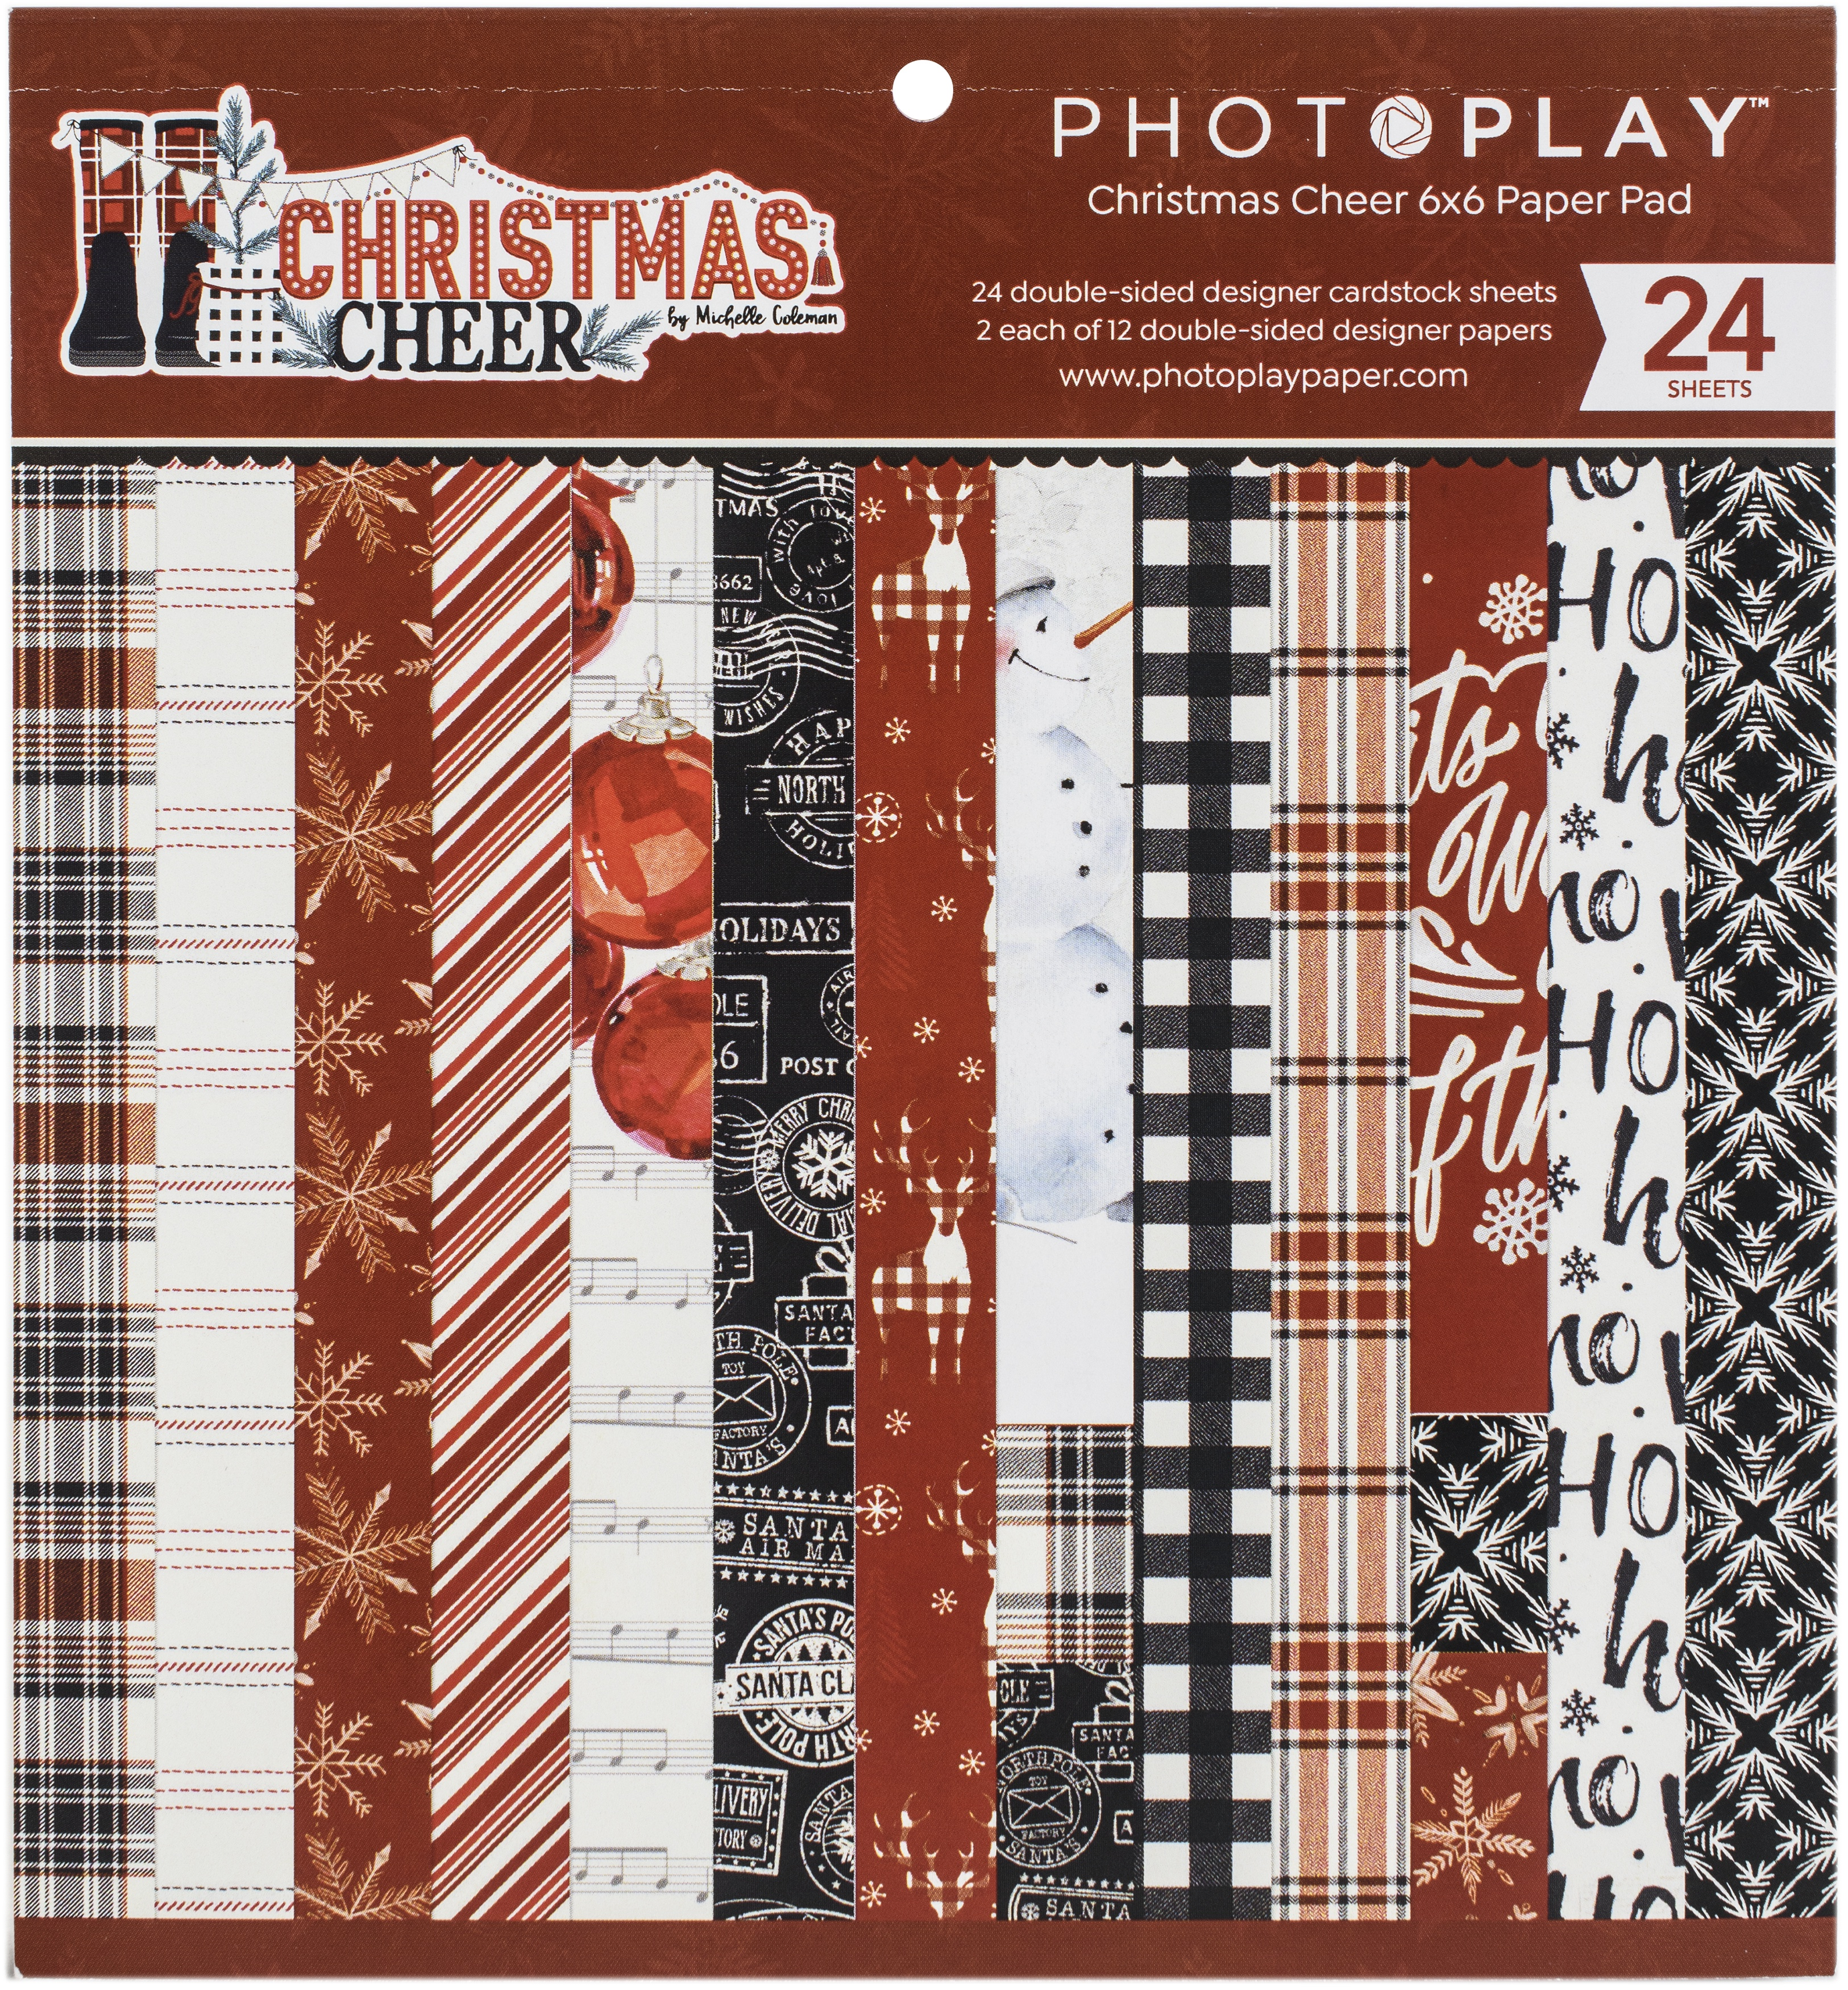 PhotoPlay Christmas Cheer Paper Pad 6x6